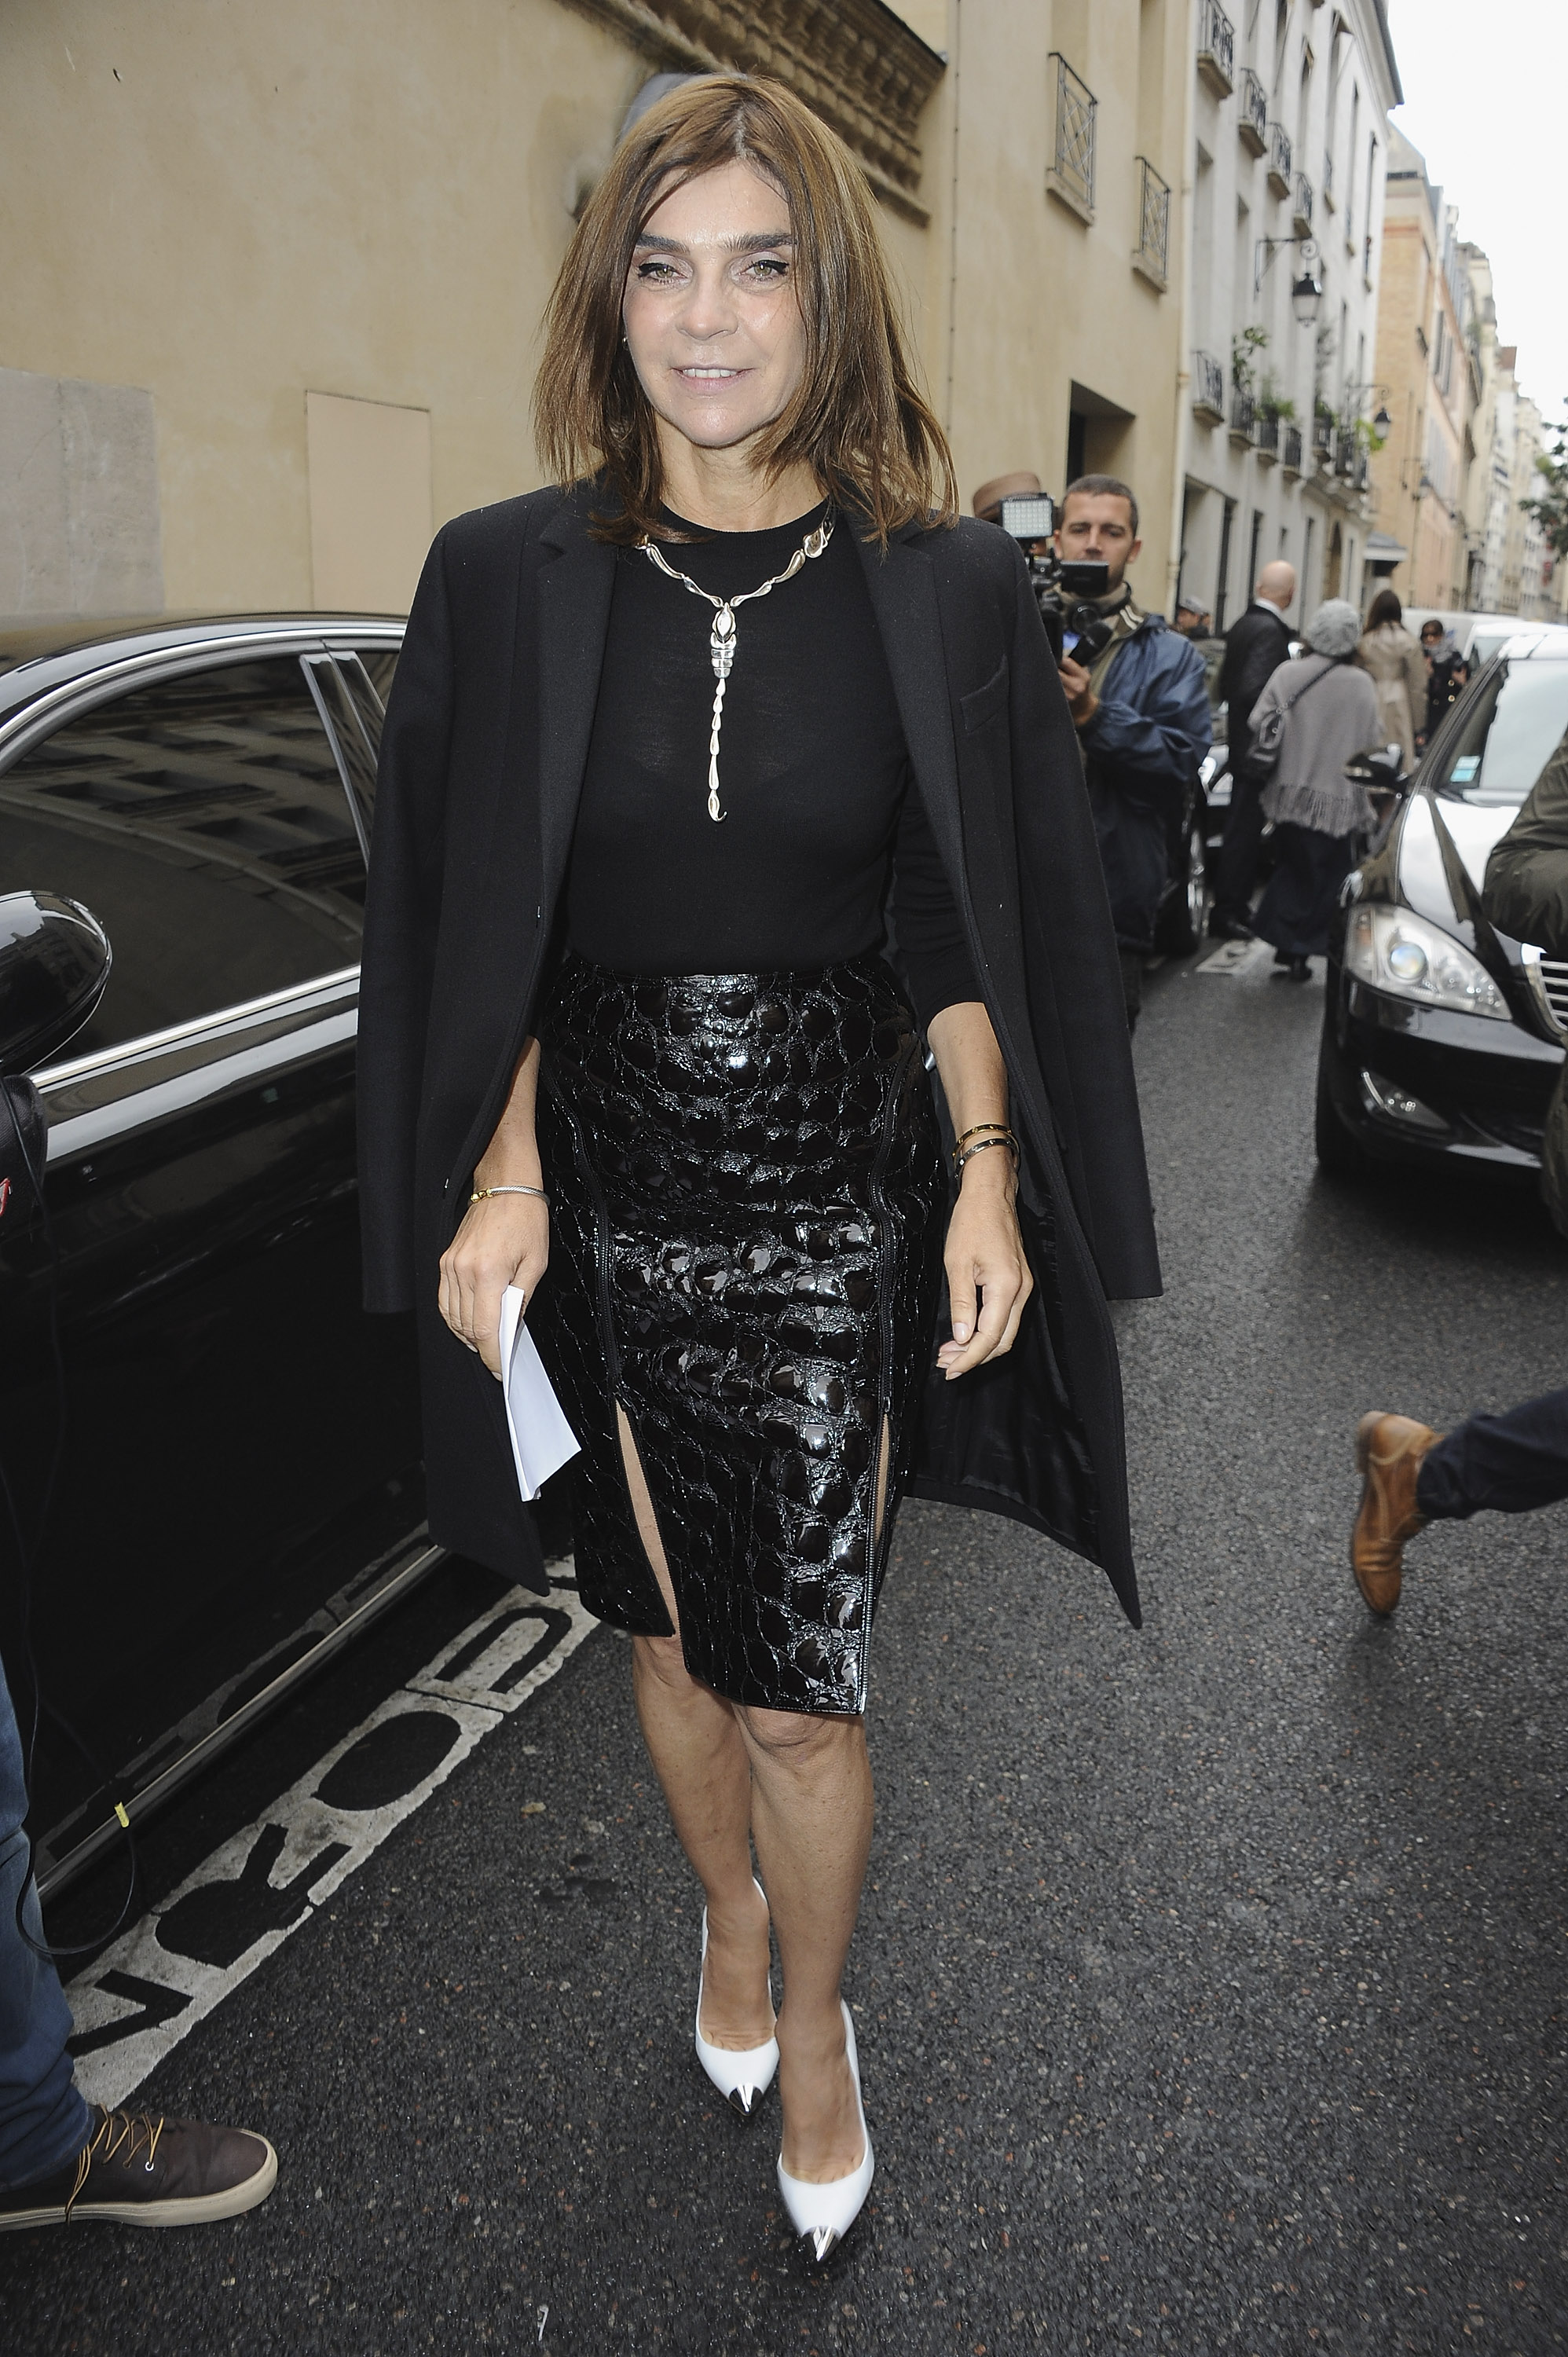 At Balmain in Paris, Carine Roitfeld did the jacket-on-the-shoulders